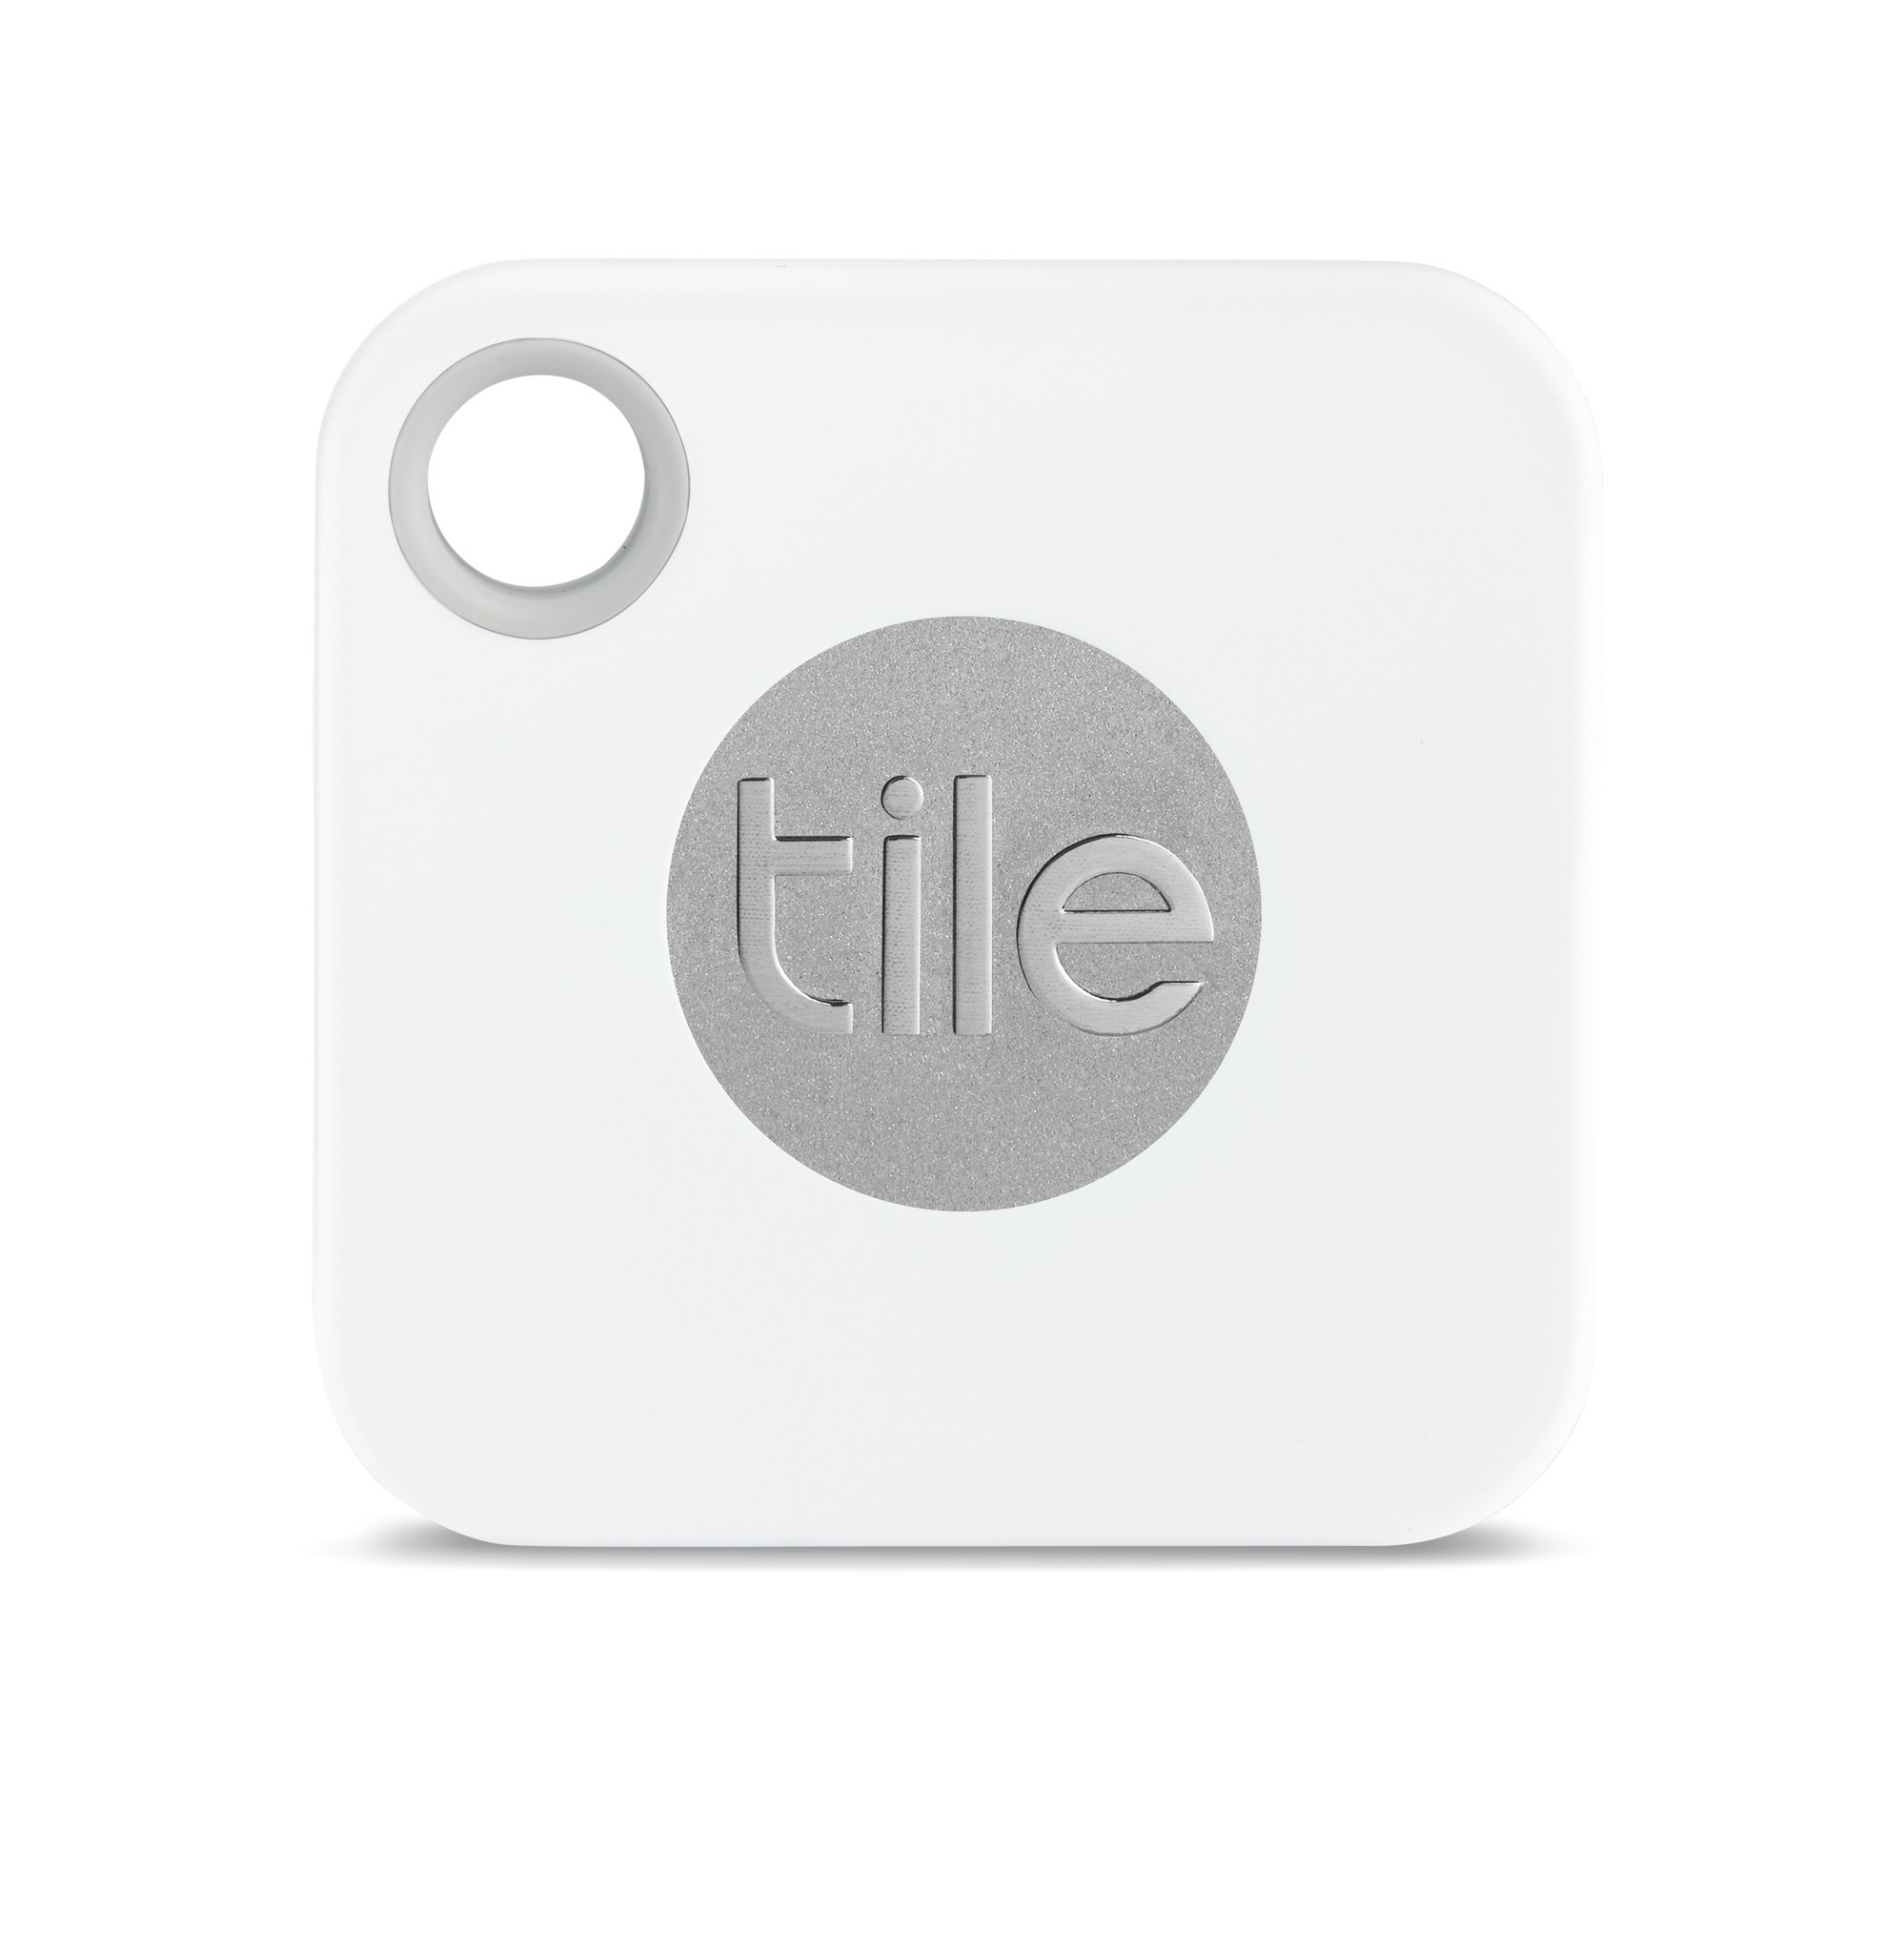 Should You Get Tile Premium Imore